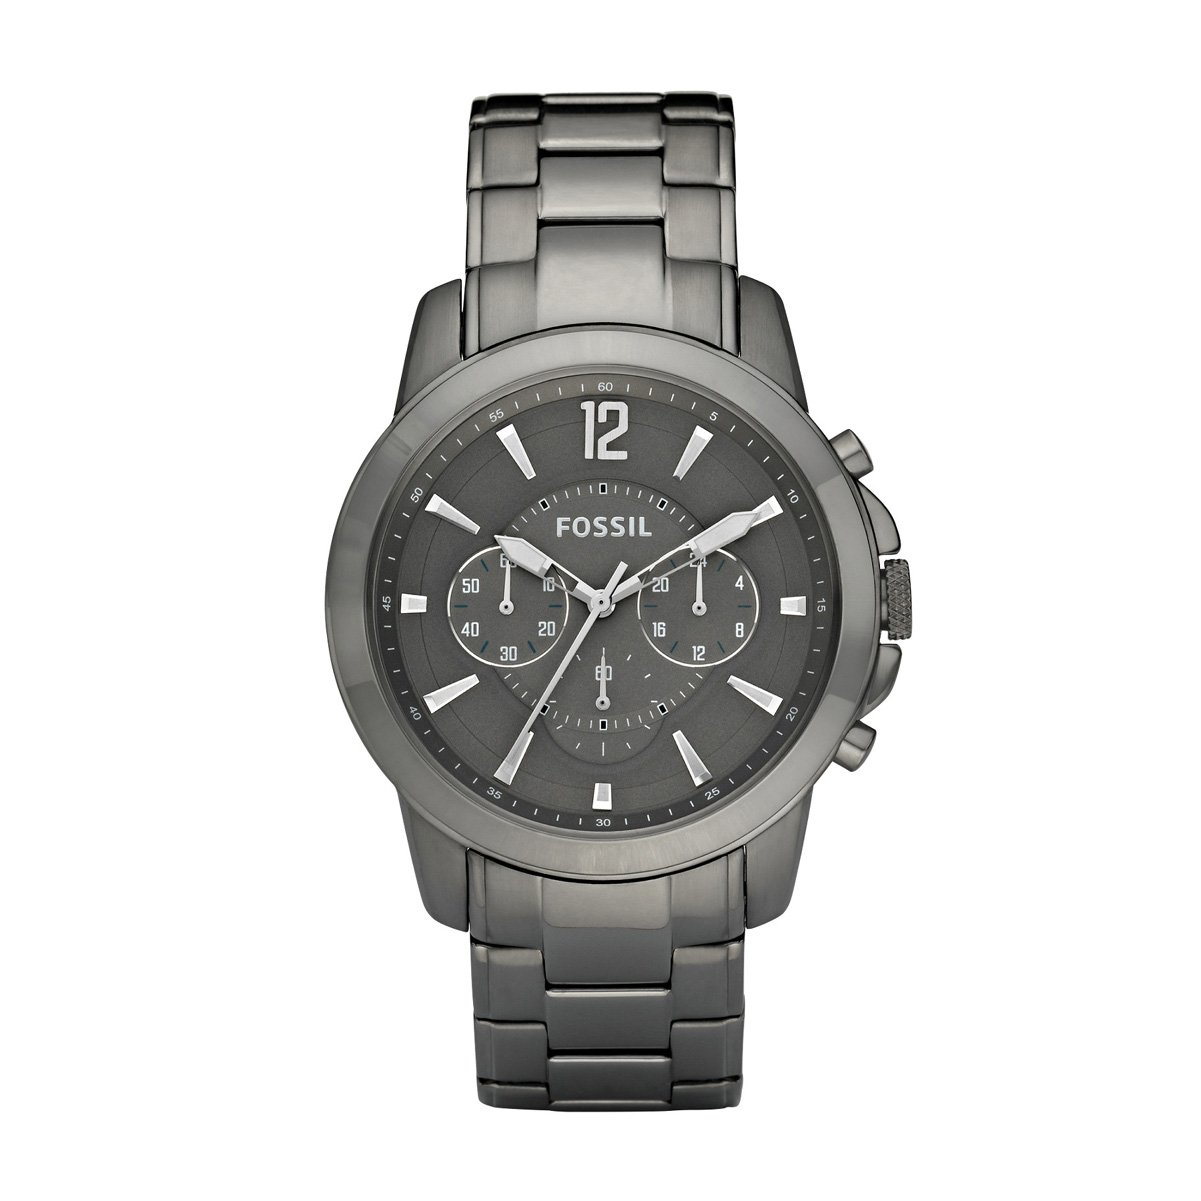 Fossil Men s FS4584 Stainless Steel Analog Grey Dial Watch